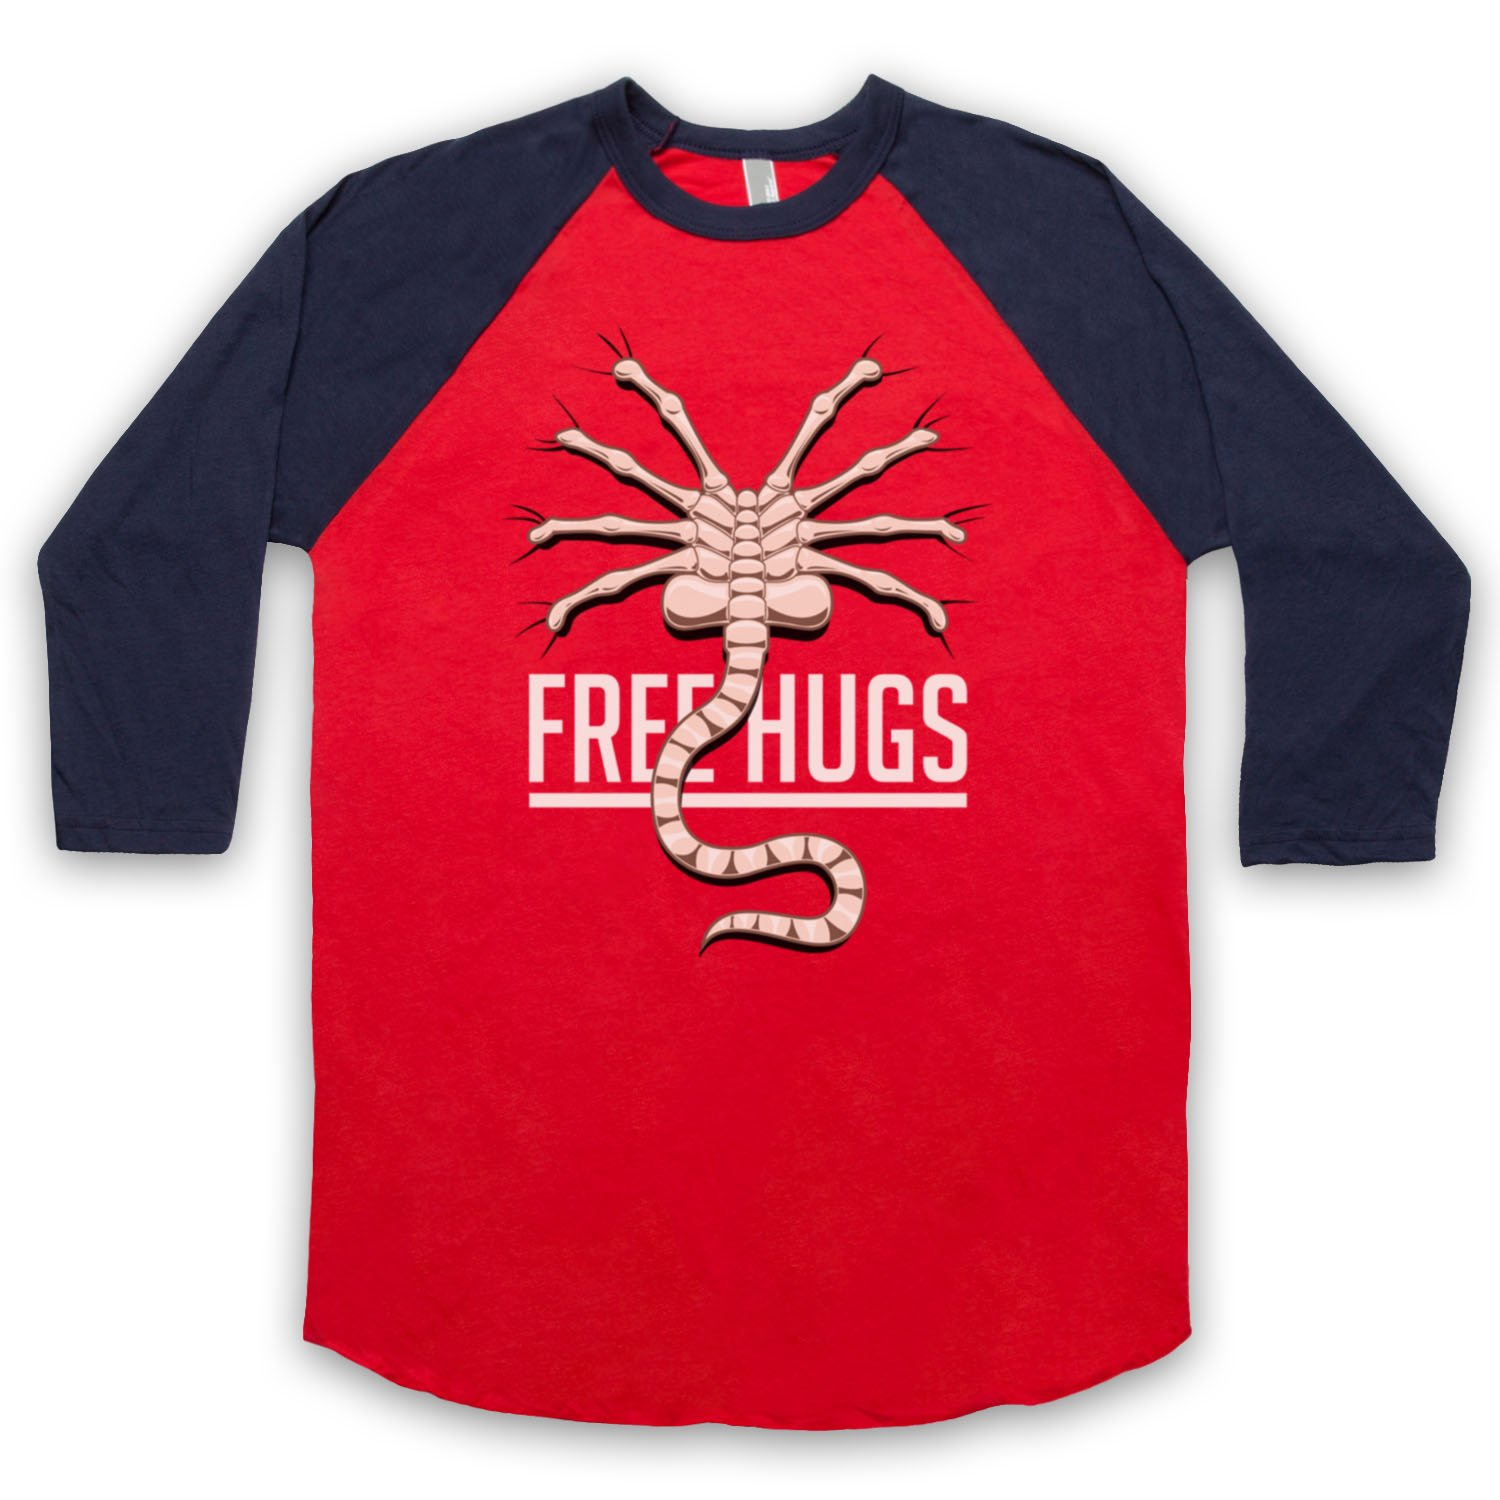 Inspired by Aliens Free Hugs Unofficial 3/4 Sleeve Retro Baseball Tee